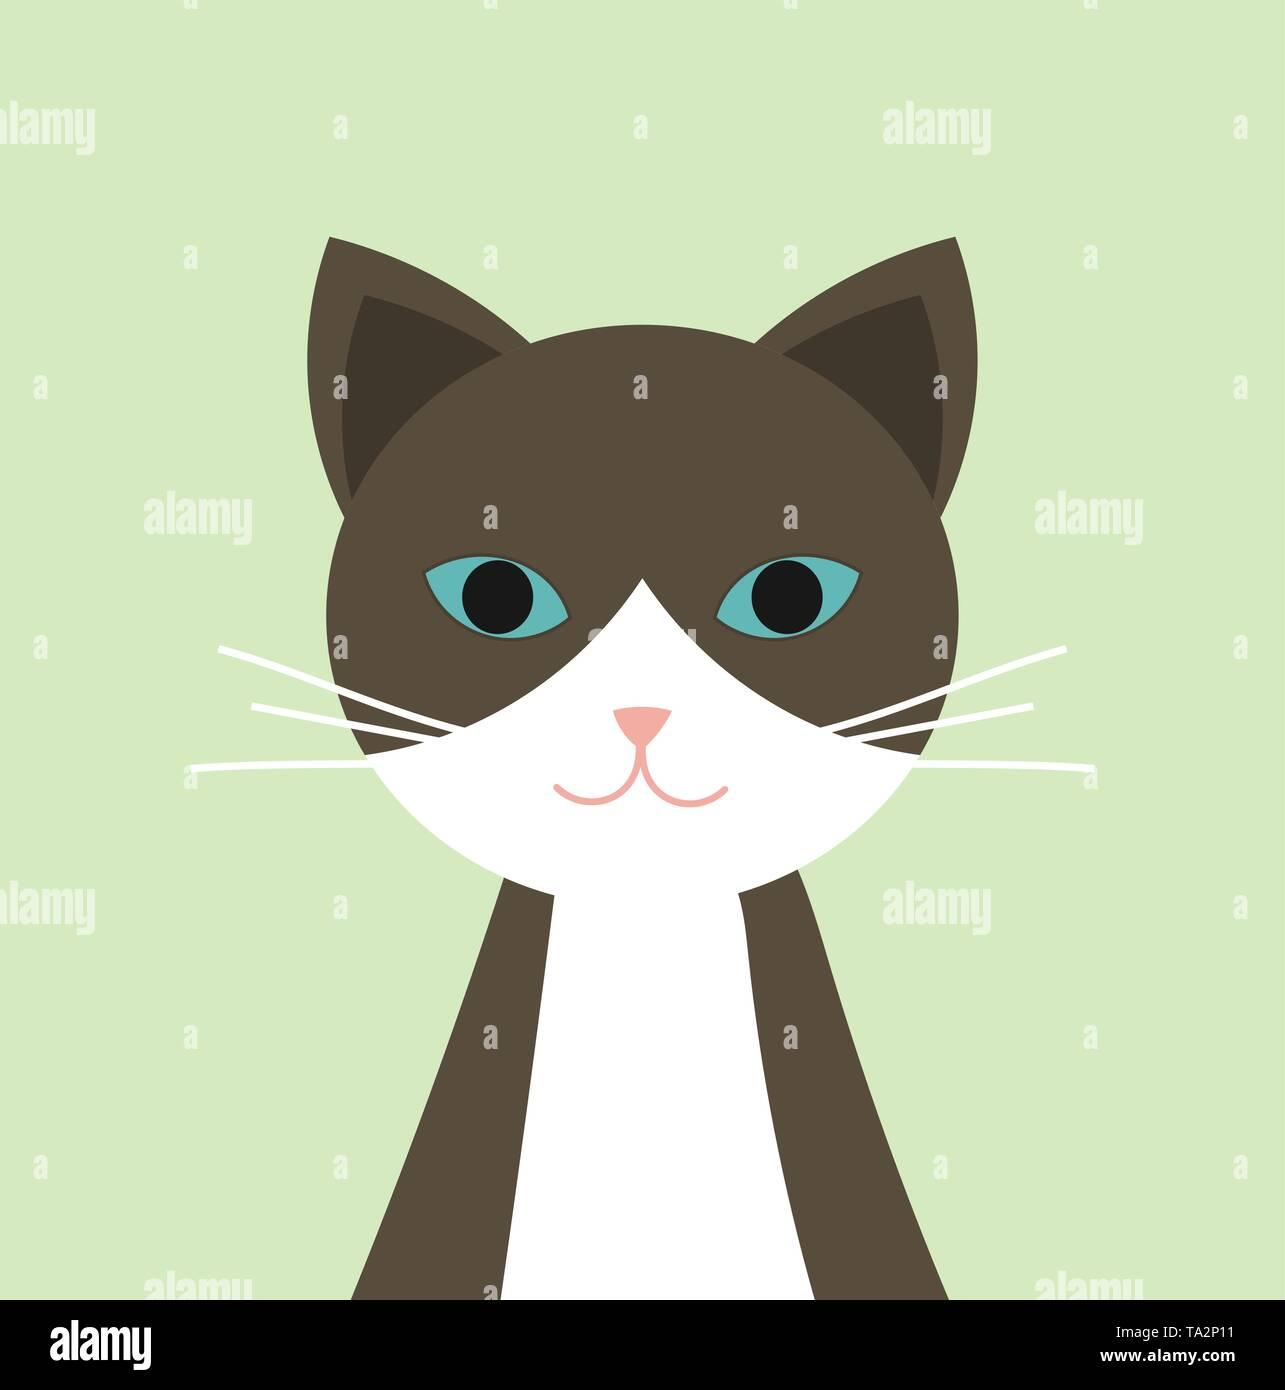 Brown and white cat with blue eyes portrait. Vector illustration - Stock Image